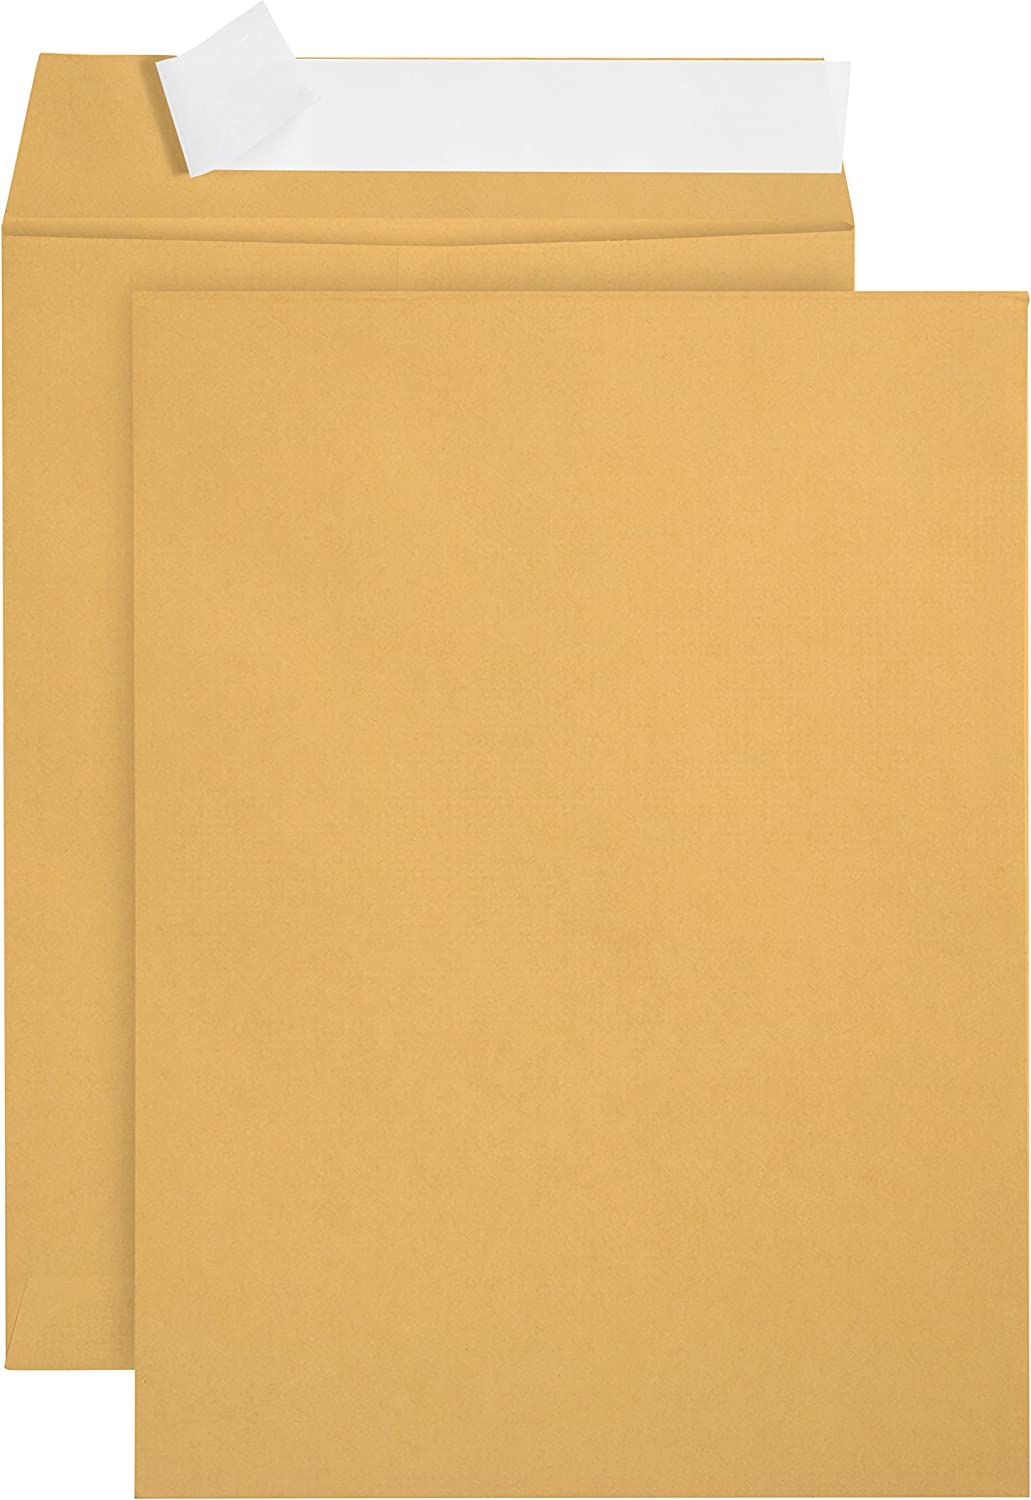 100 6 x 9 Self Seal Golden Brown Kraft Catalog Envelopes - Oversize 6 x 9 Envelope Peel and Seal Flap with 28 Pound Kraft Paper Envelopes - Printer Friendly Design - 100 Count : Office Products